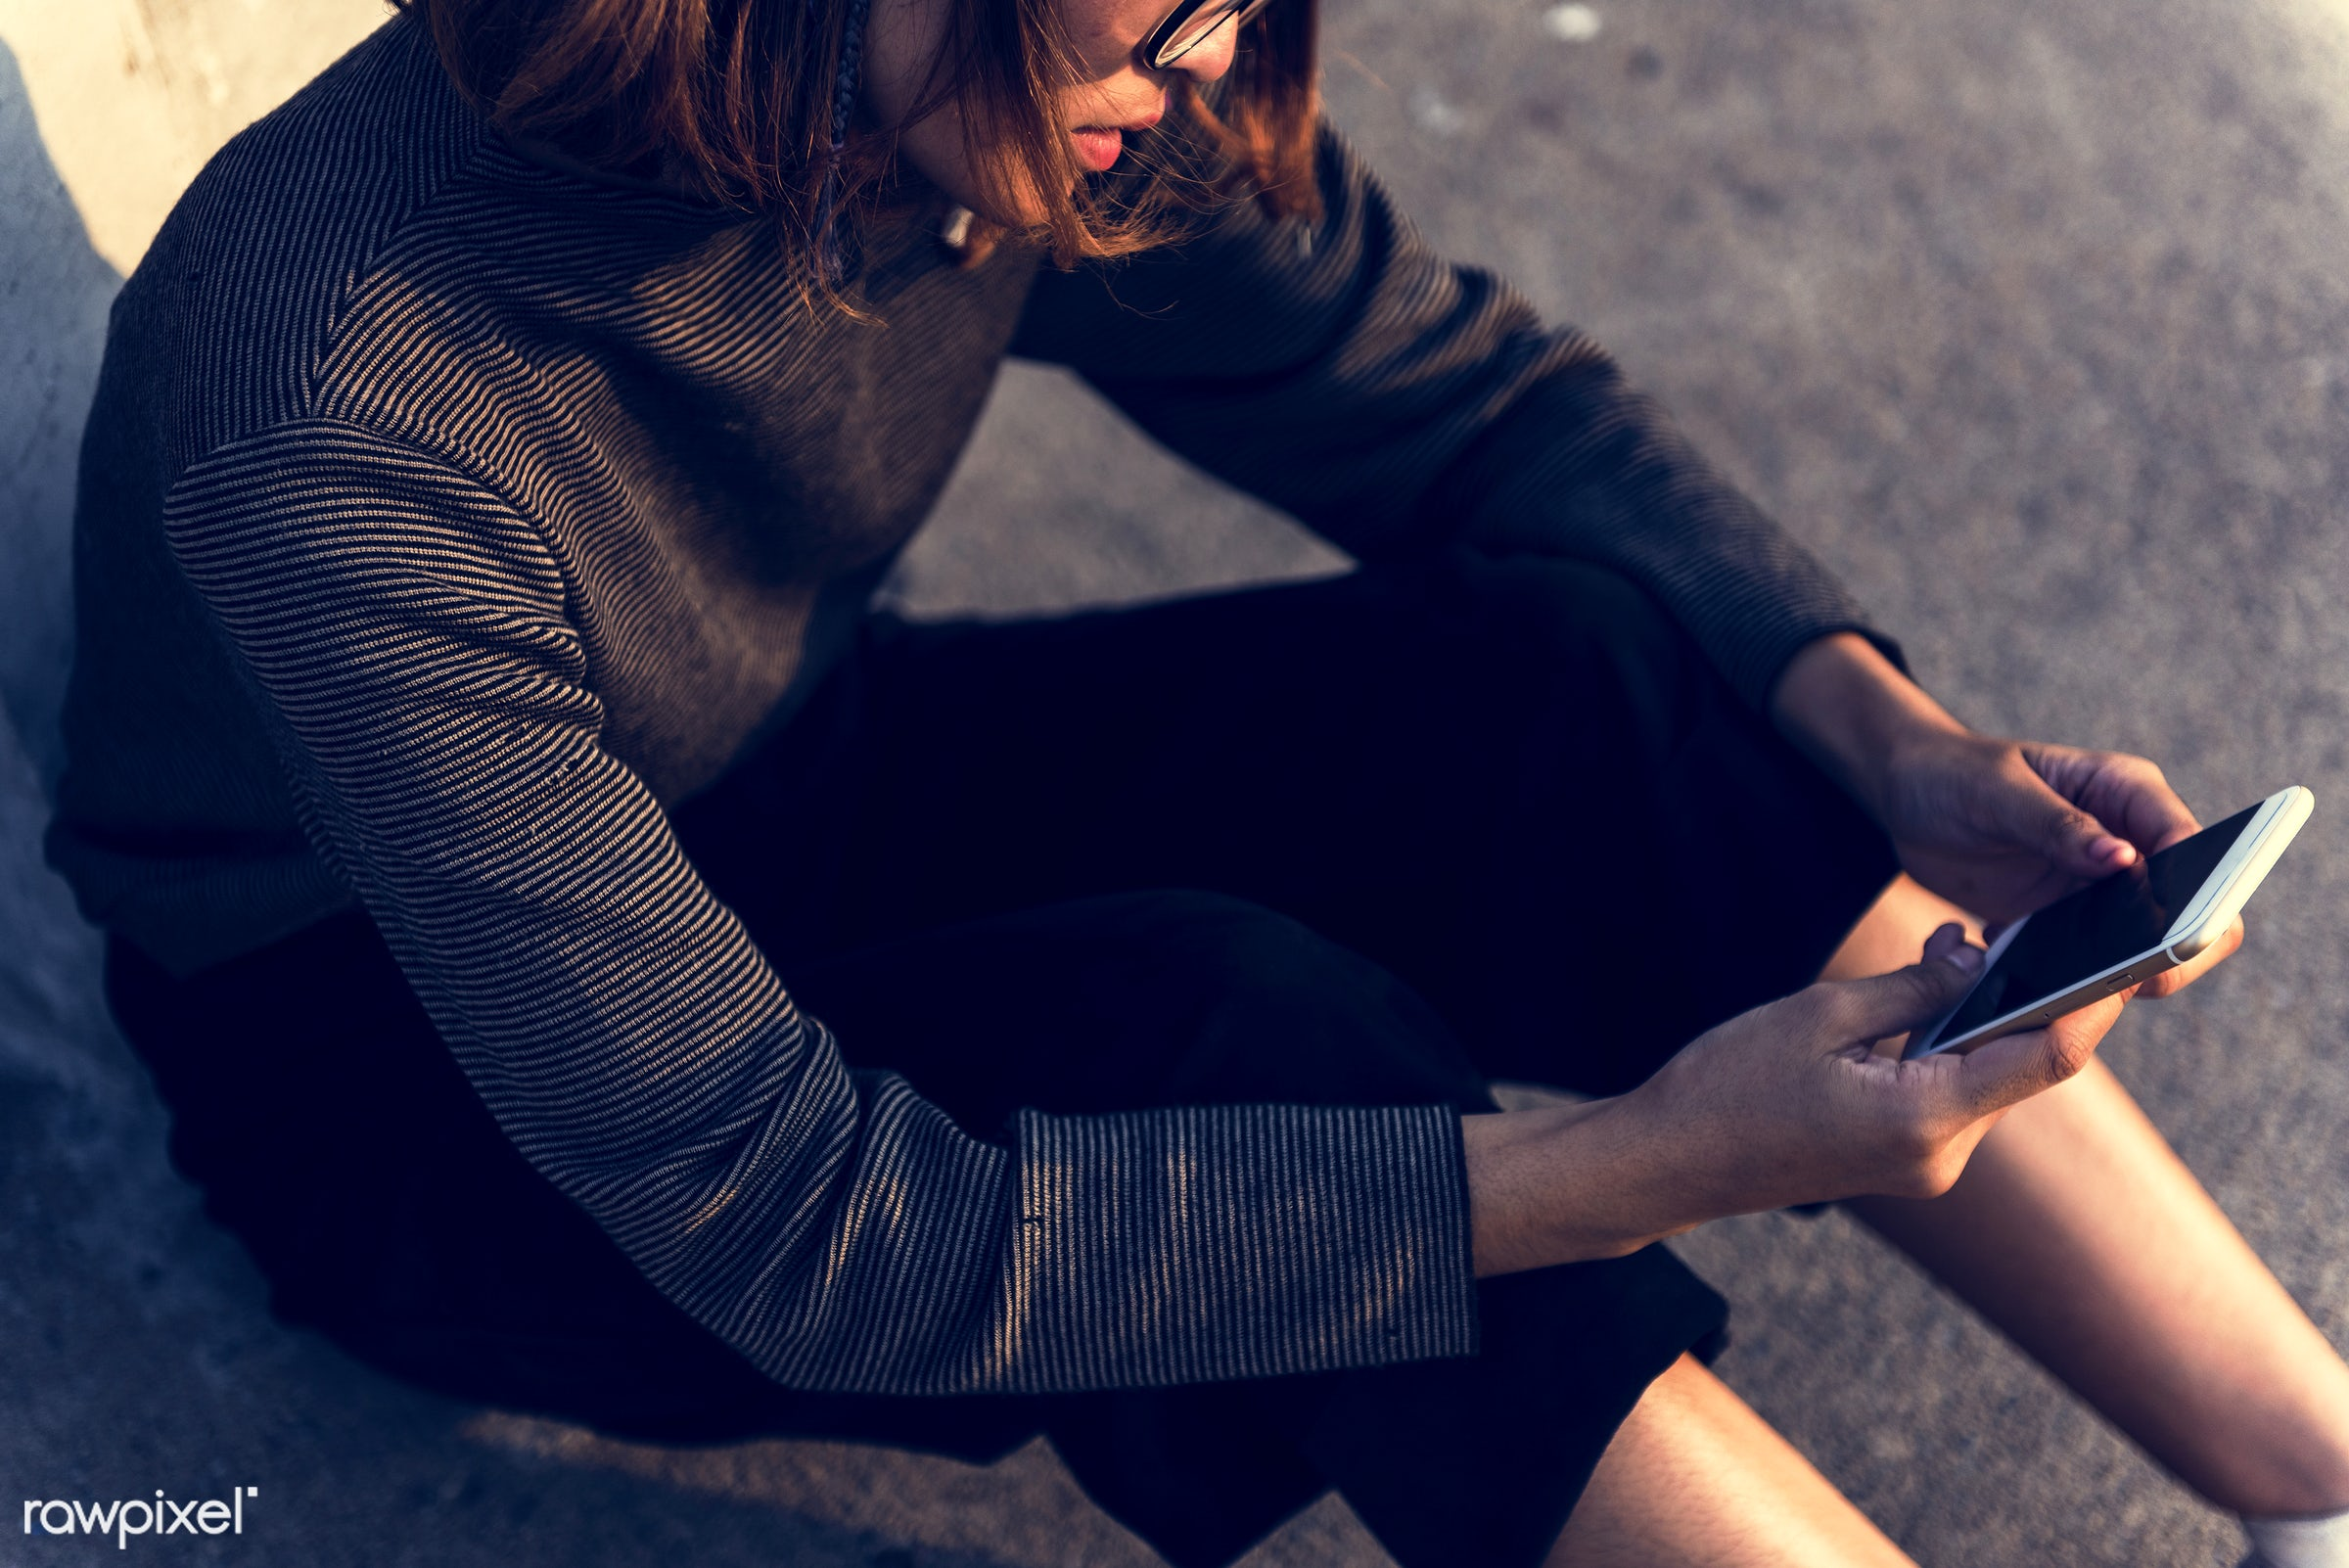 girl, woman, mobile, phone, smartphone, alone, outside, city, urban, asian, sitting, ground, relaxation, leisure, recreation...